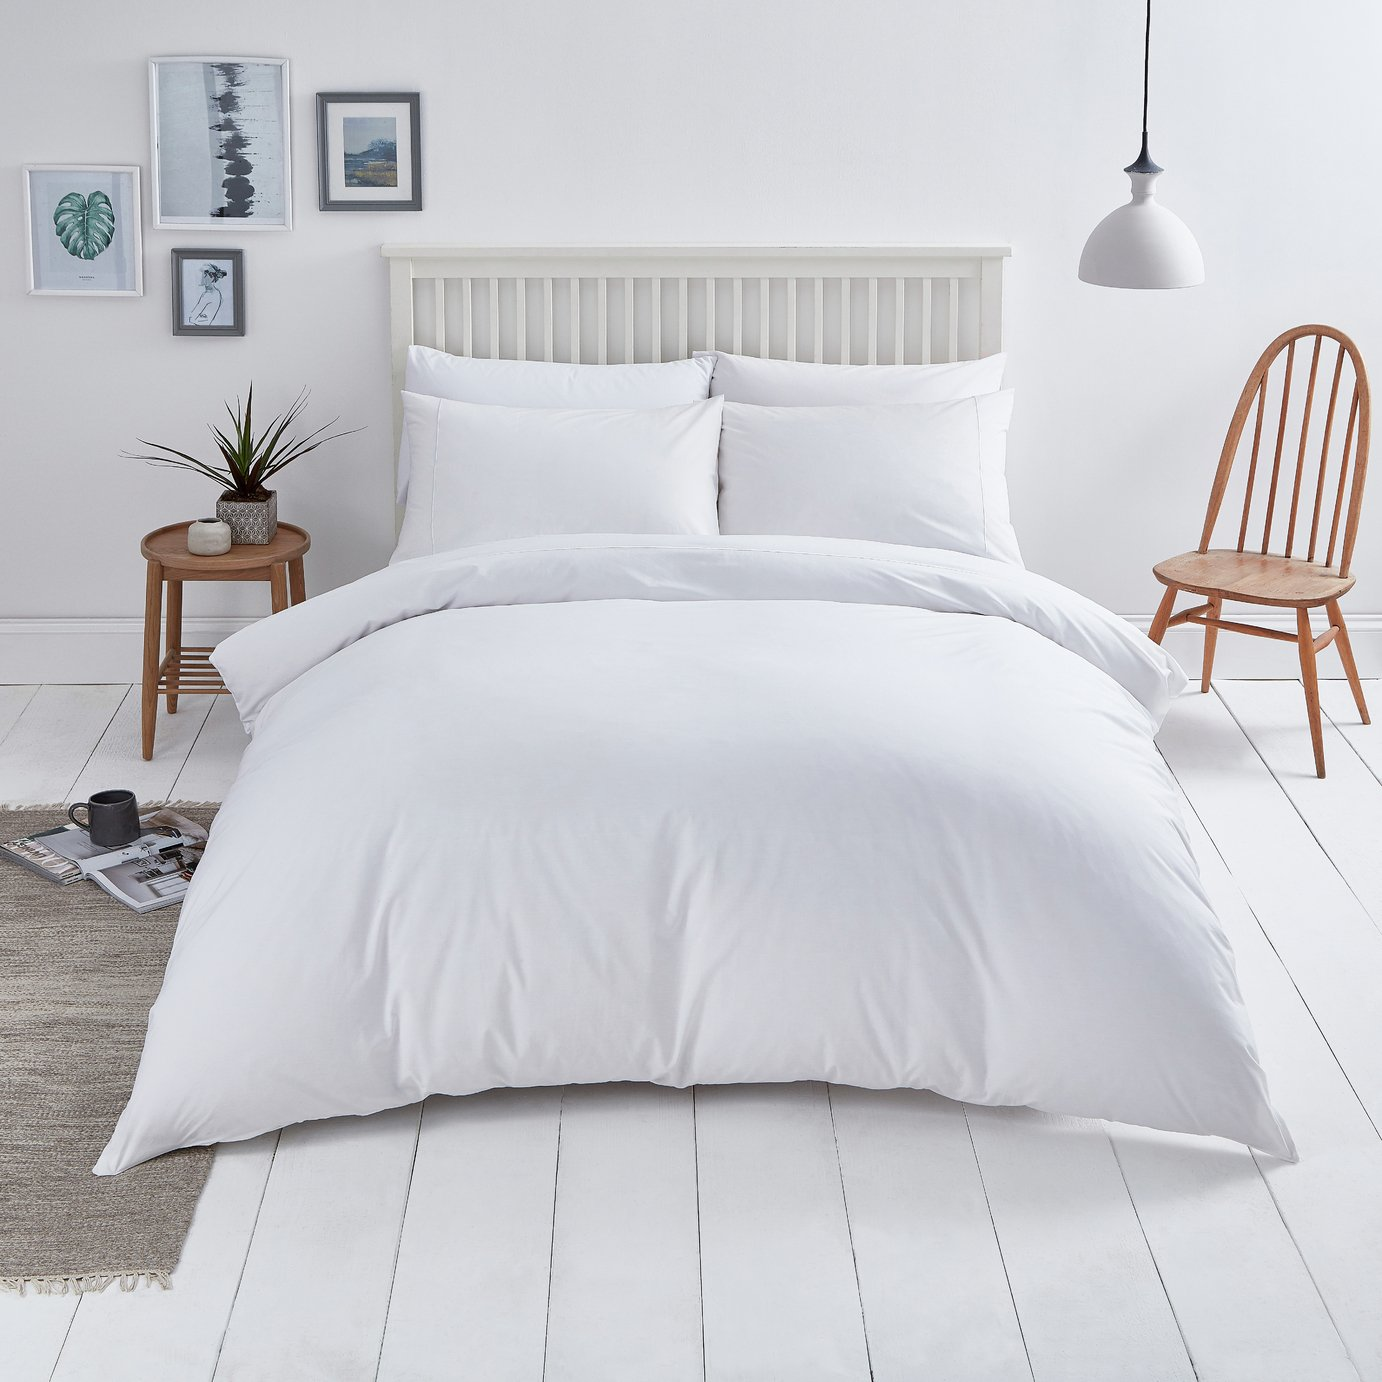 Sainsbury's Home Cool Cotton White Bedding Set - Superking